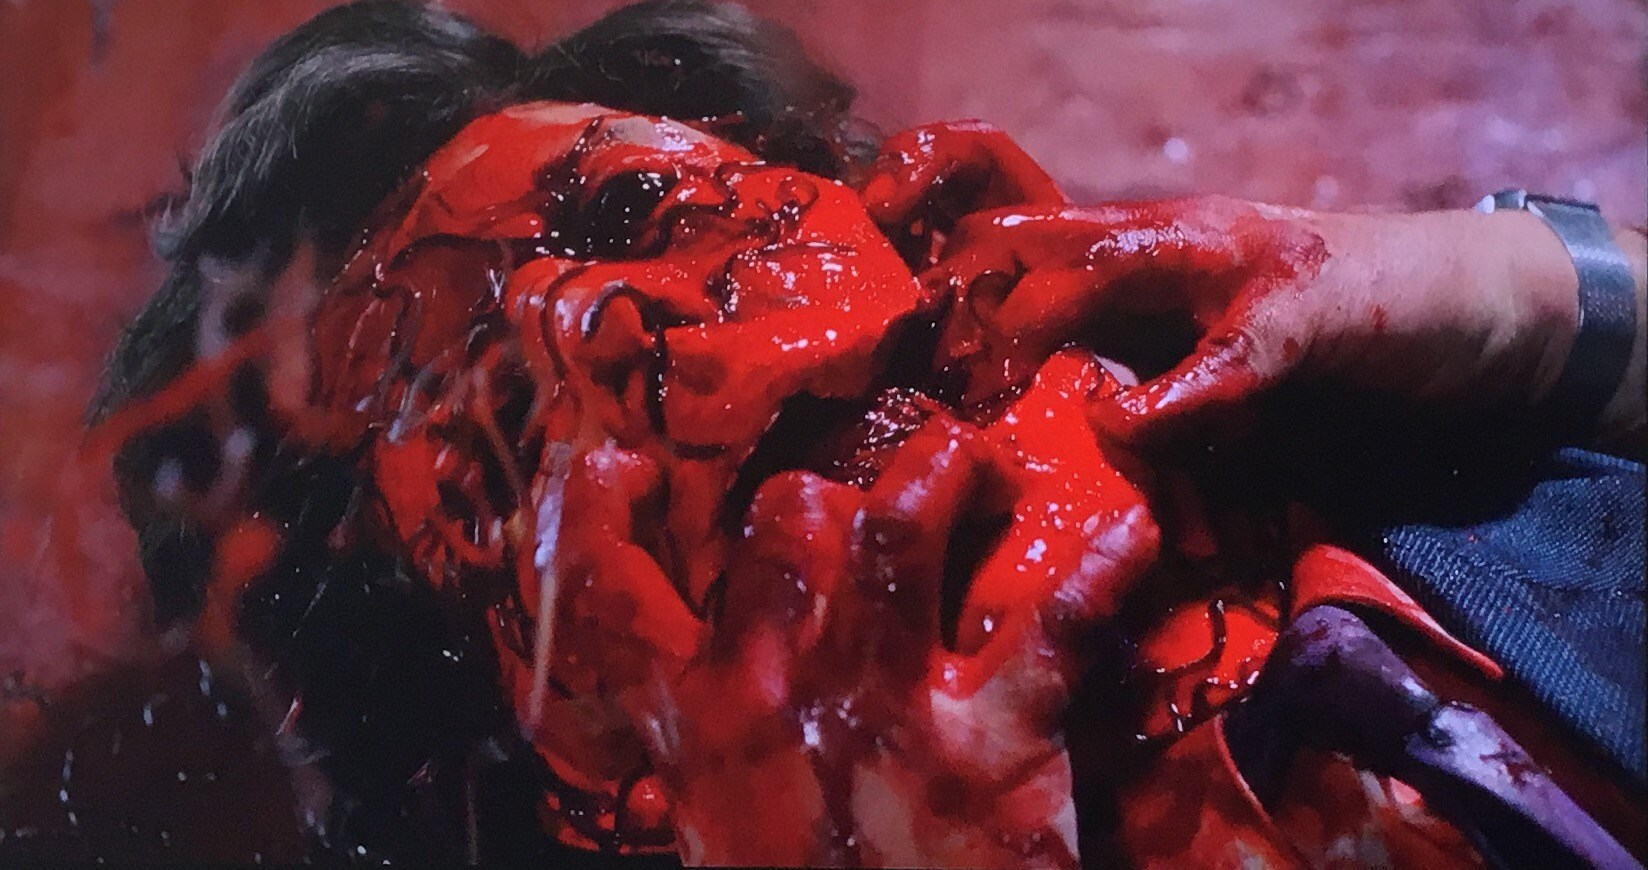 Extremely gory deaths in Slugs (1988)